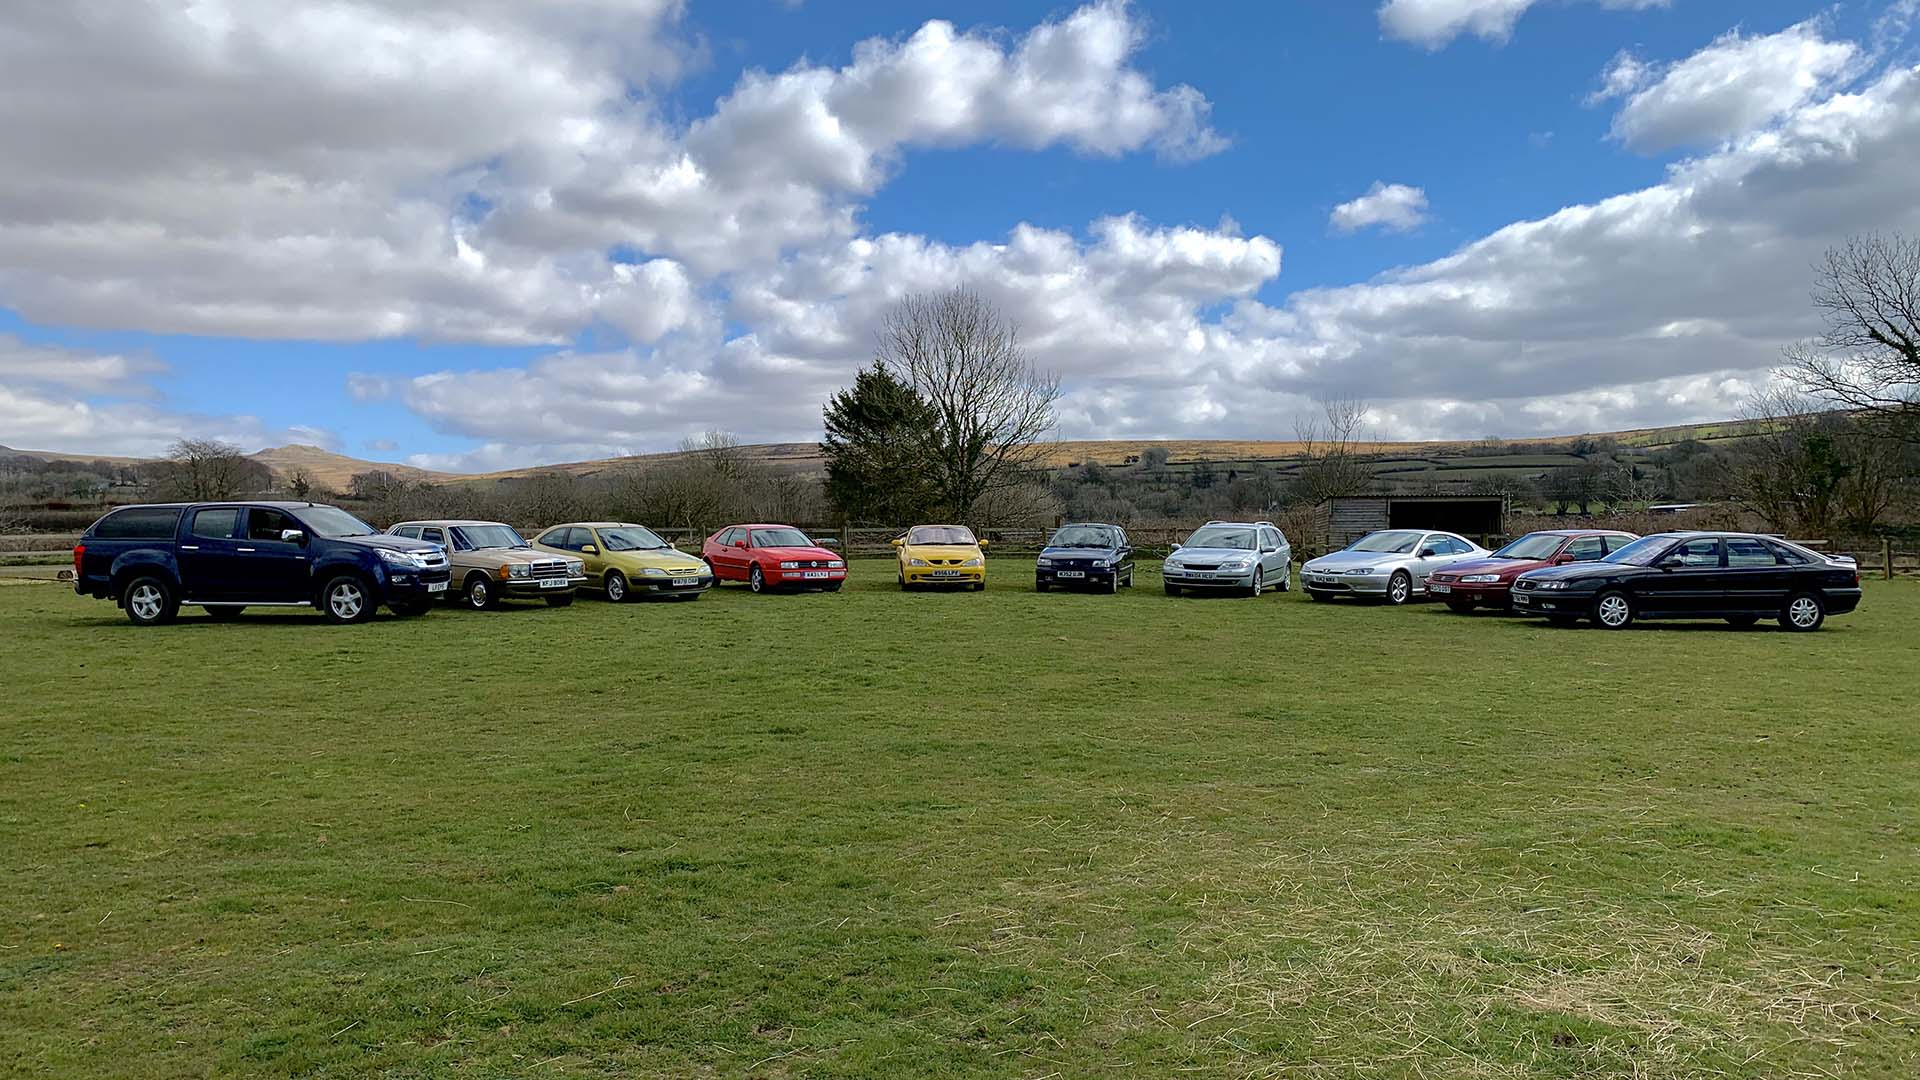 The PetrolBlog Fleet